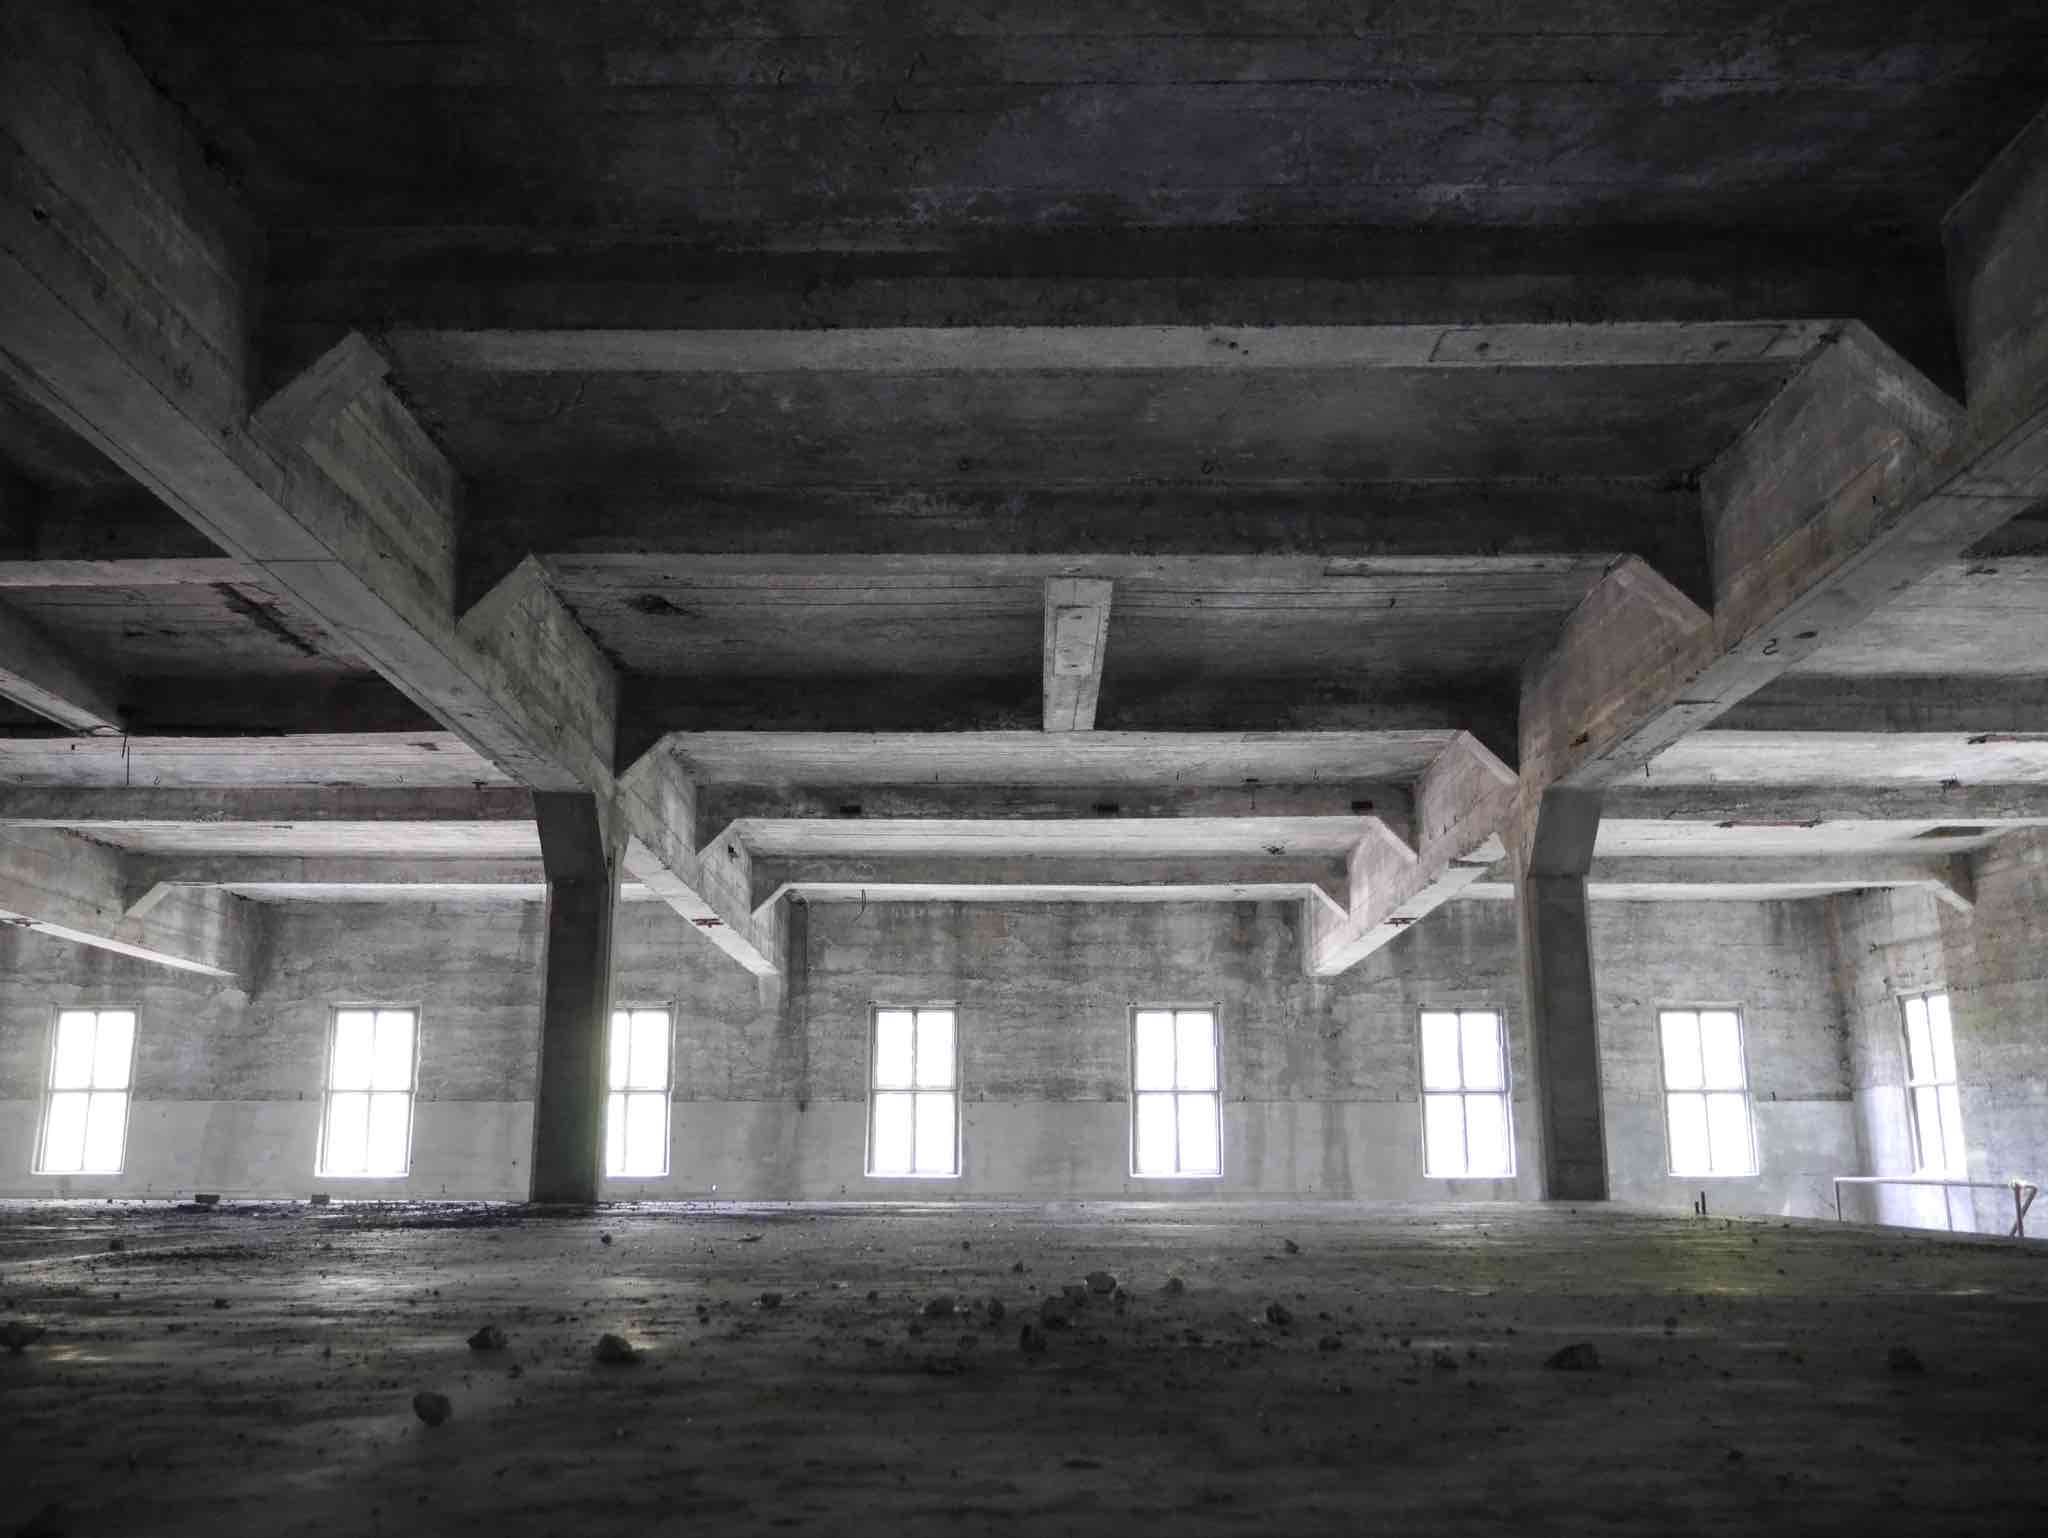 Warehouse space in the original Olympia brewery in Tumwater, Washington. (photo by Cat Stelzer)